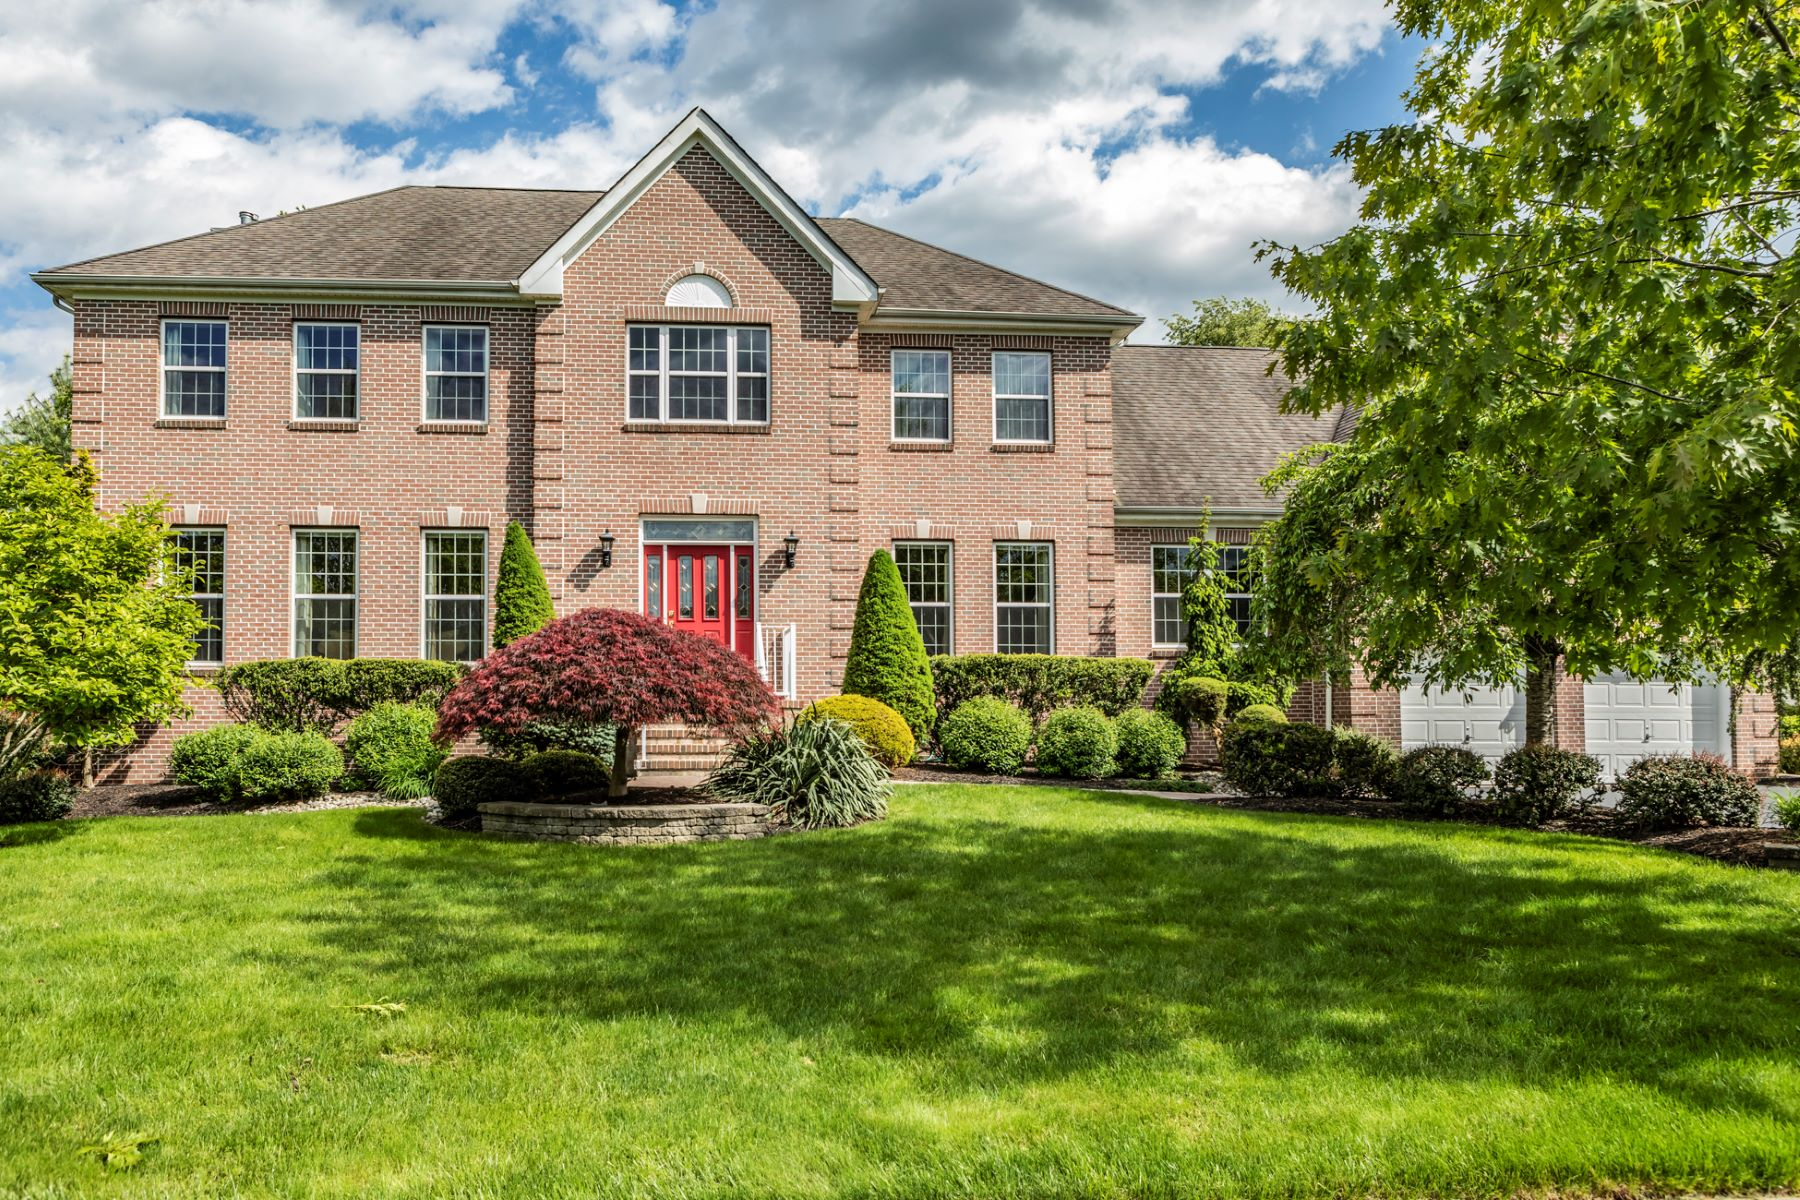 Single Family Home for Sale at Brick Front Colonial is Perfection 5 Mahogany Court, Plainsboro, New Jersey 08536 United States